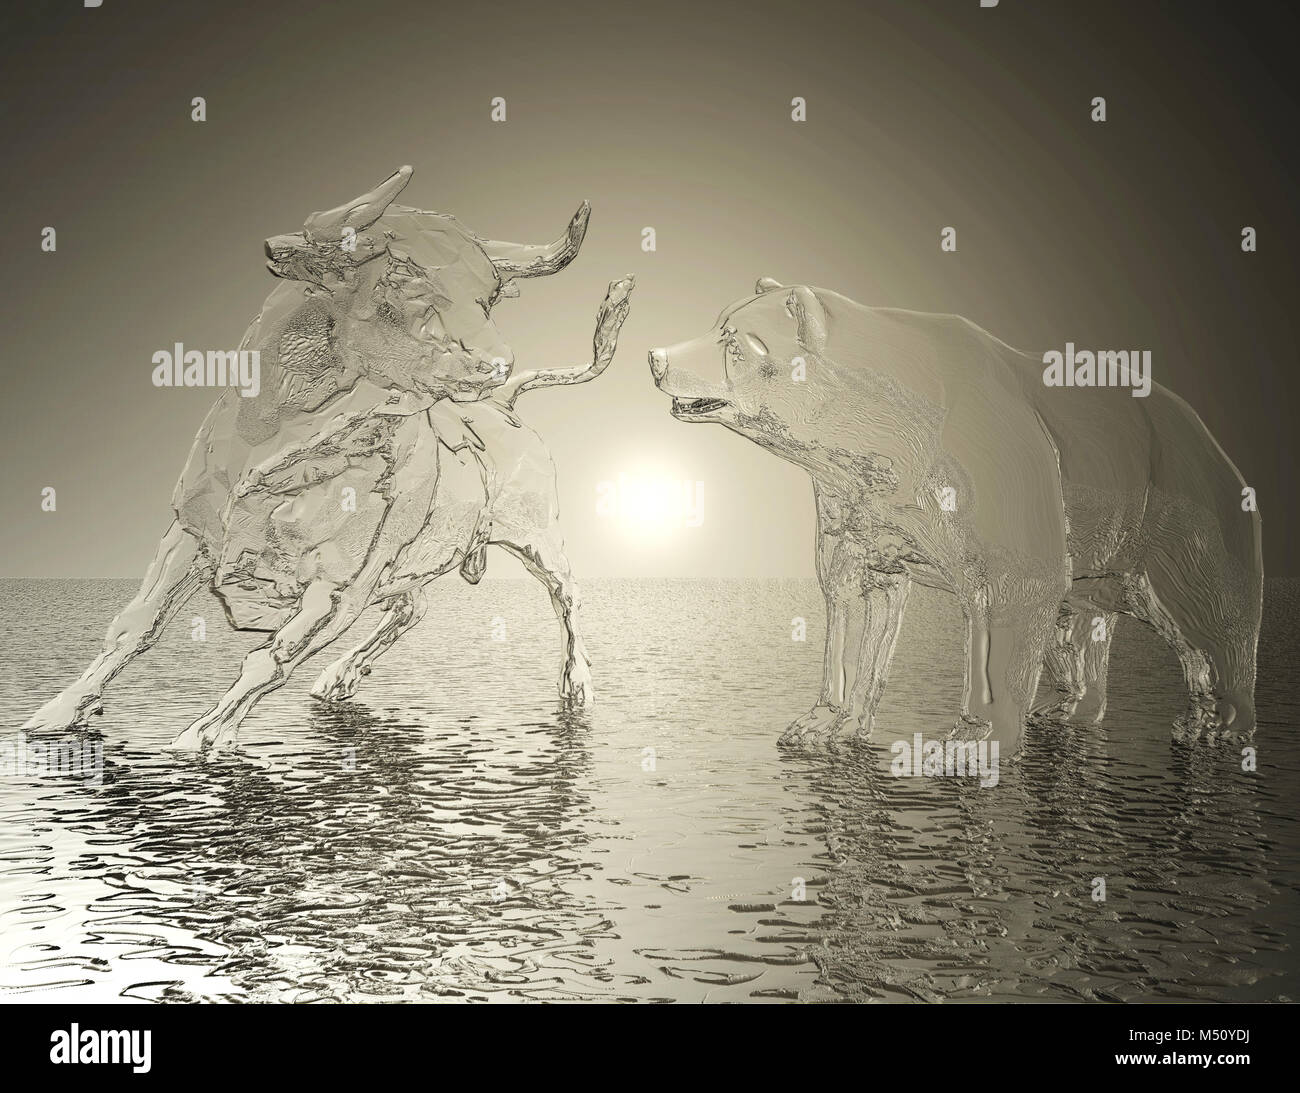 Digital 3D Illustration of a Bull and Bear Relief - Stock Image